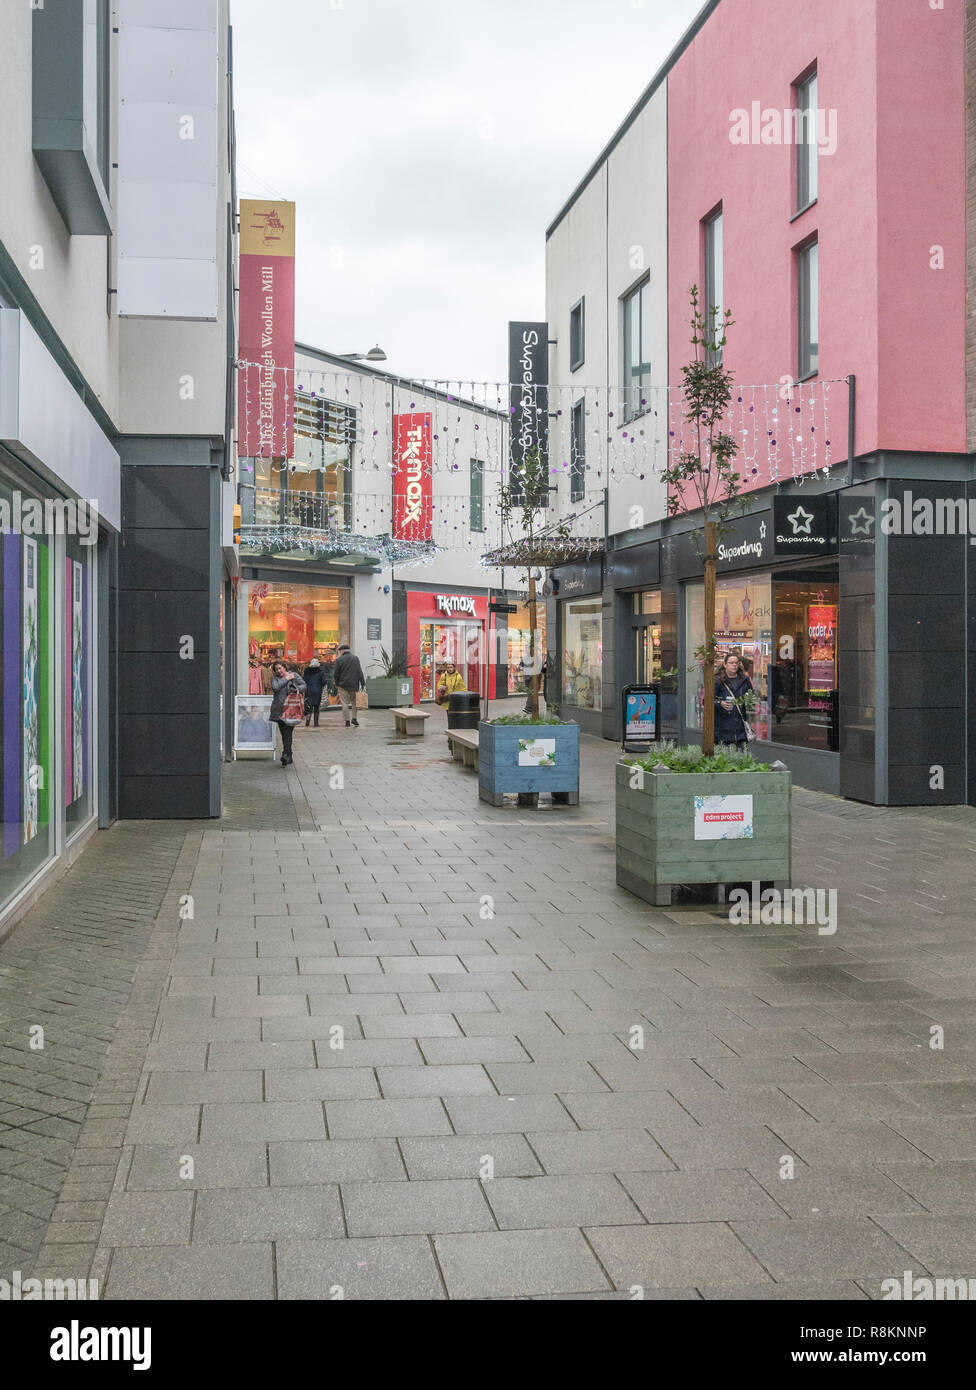 Almost deserted Fore Street in St. Austell, Cornwall - a retail shopping zone at Christmas 2018. Metaphor death of the high street, poor retail sales. - Stock Image